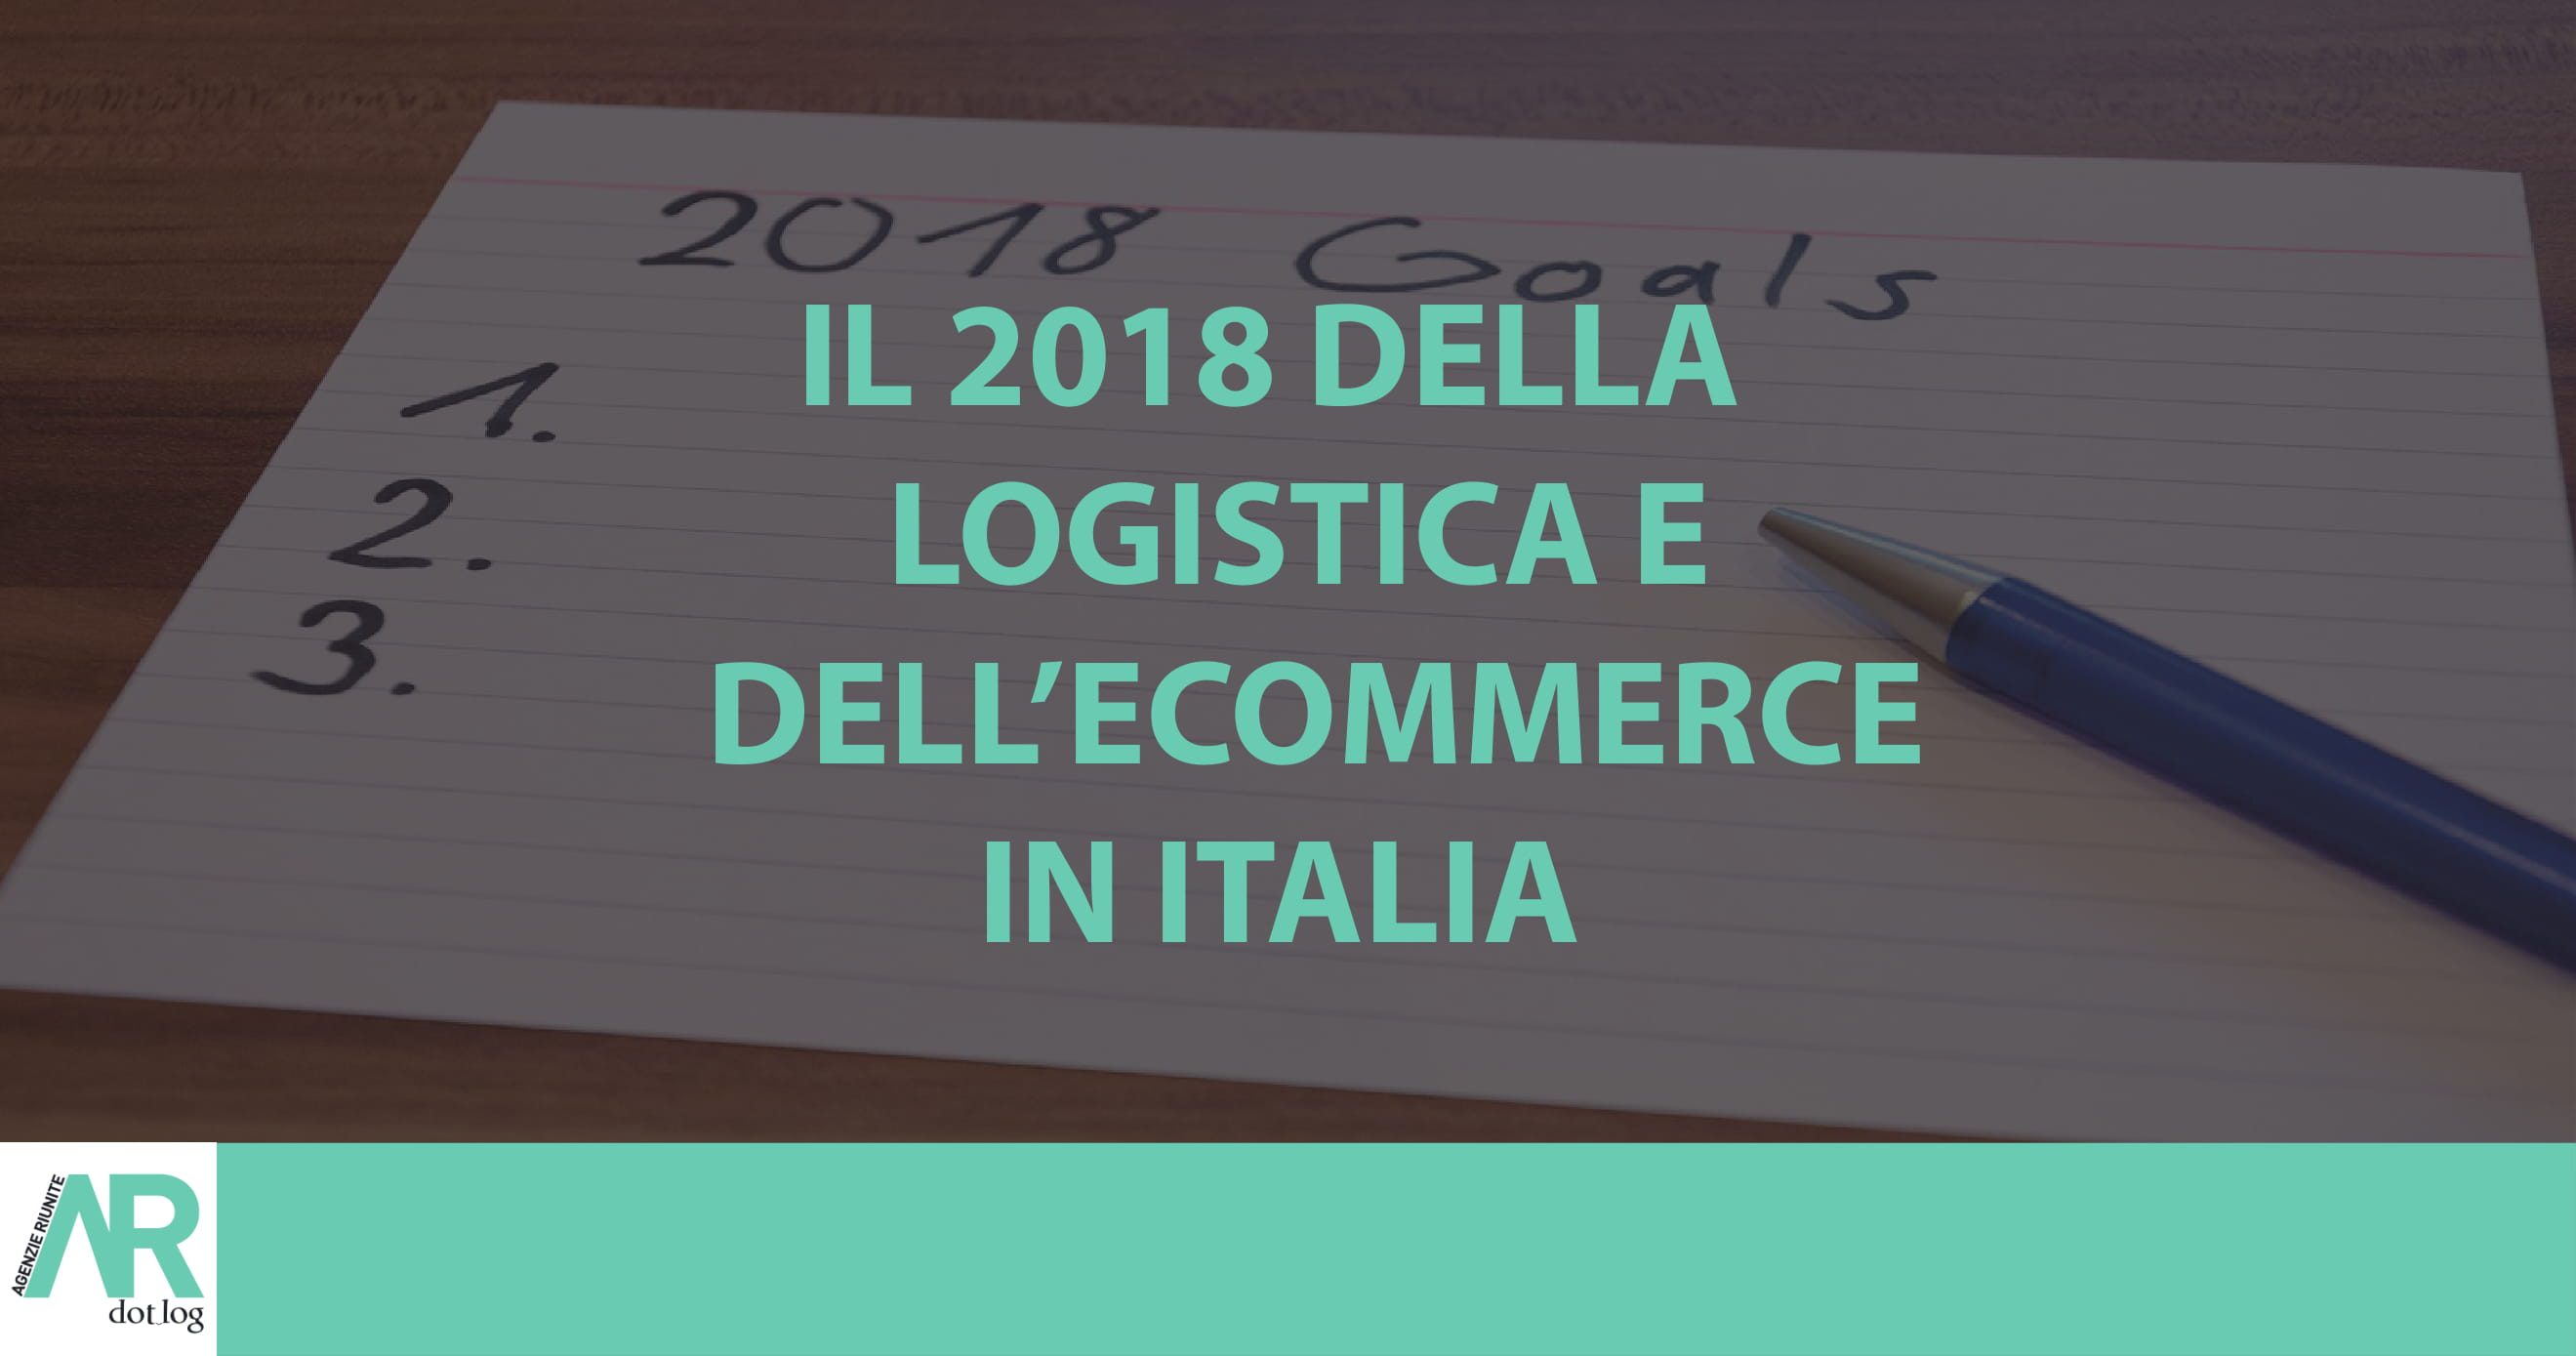 E-commerce, Logistica, Logistica e-commerce, Spedizioni, B2C, outsourcing